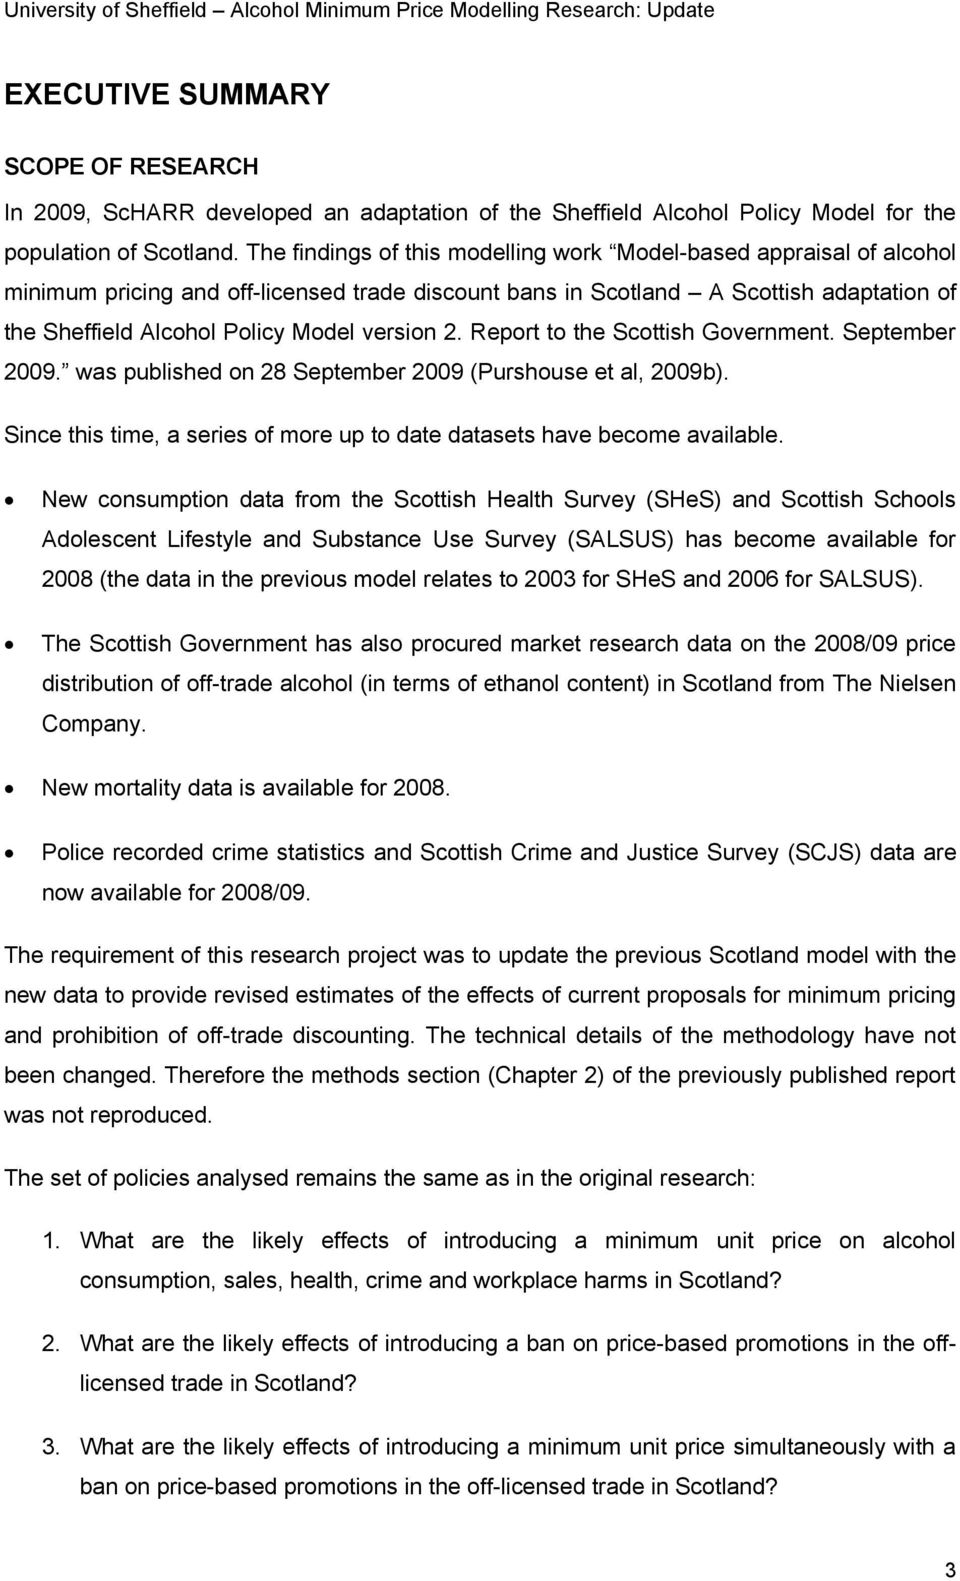 version 2. Report to the Scottish Government. September 2009. was published on 28 September 2009 (Purshouse et al, 2009b). Since this time, a series of more up to date datasets have become available.